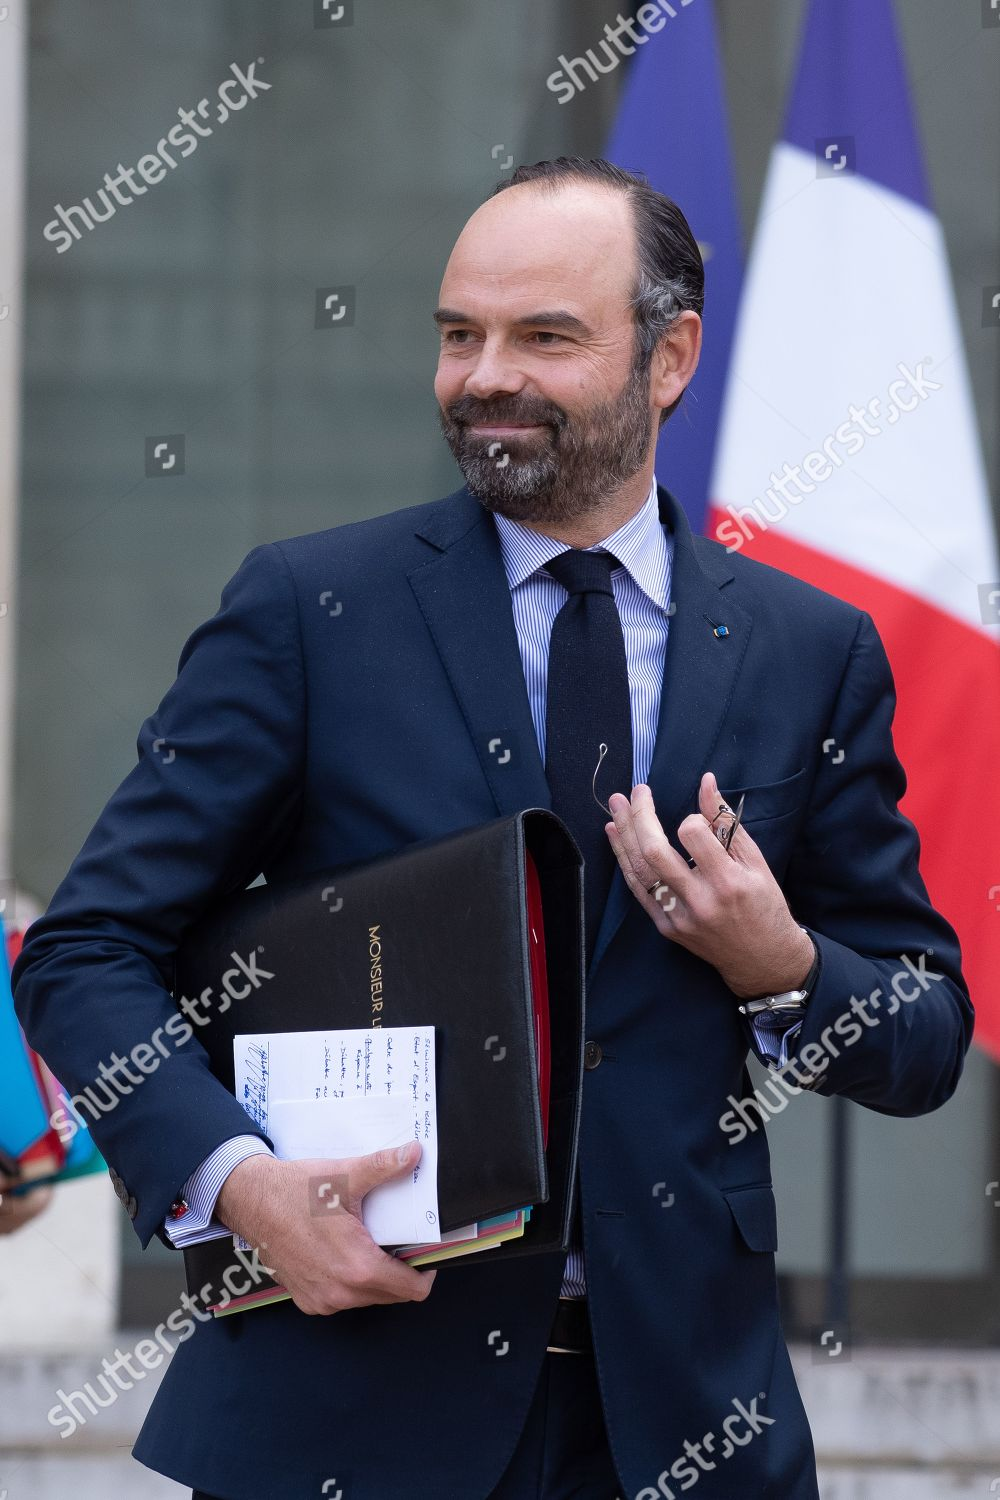 cabinet-meeting-paris-france-stock-image-by-pierre-villard-for-editorial-use-9-jan-2019